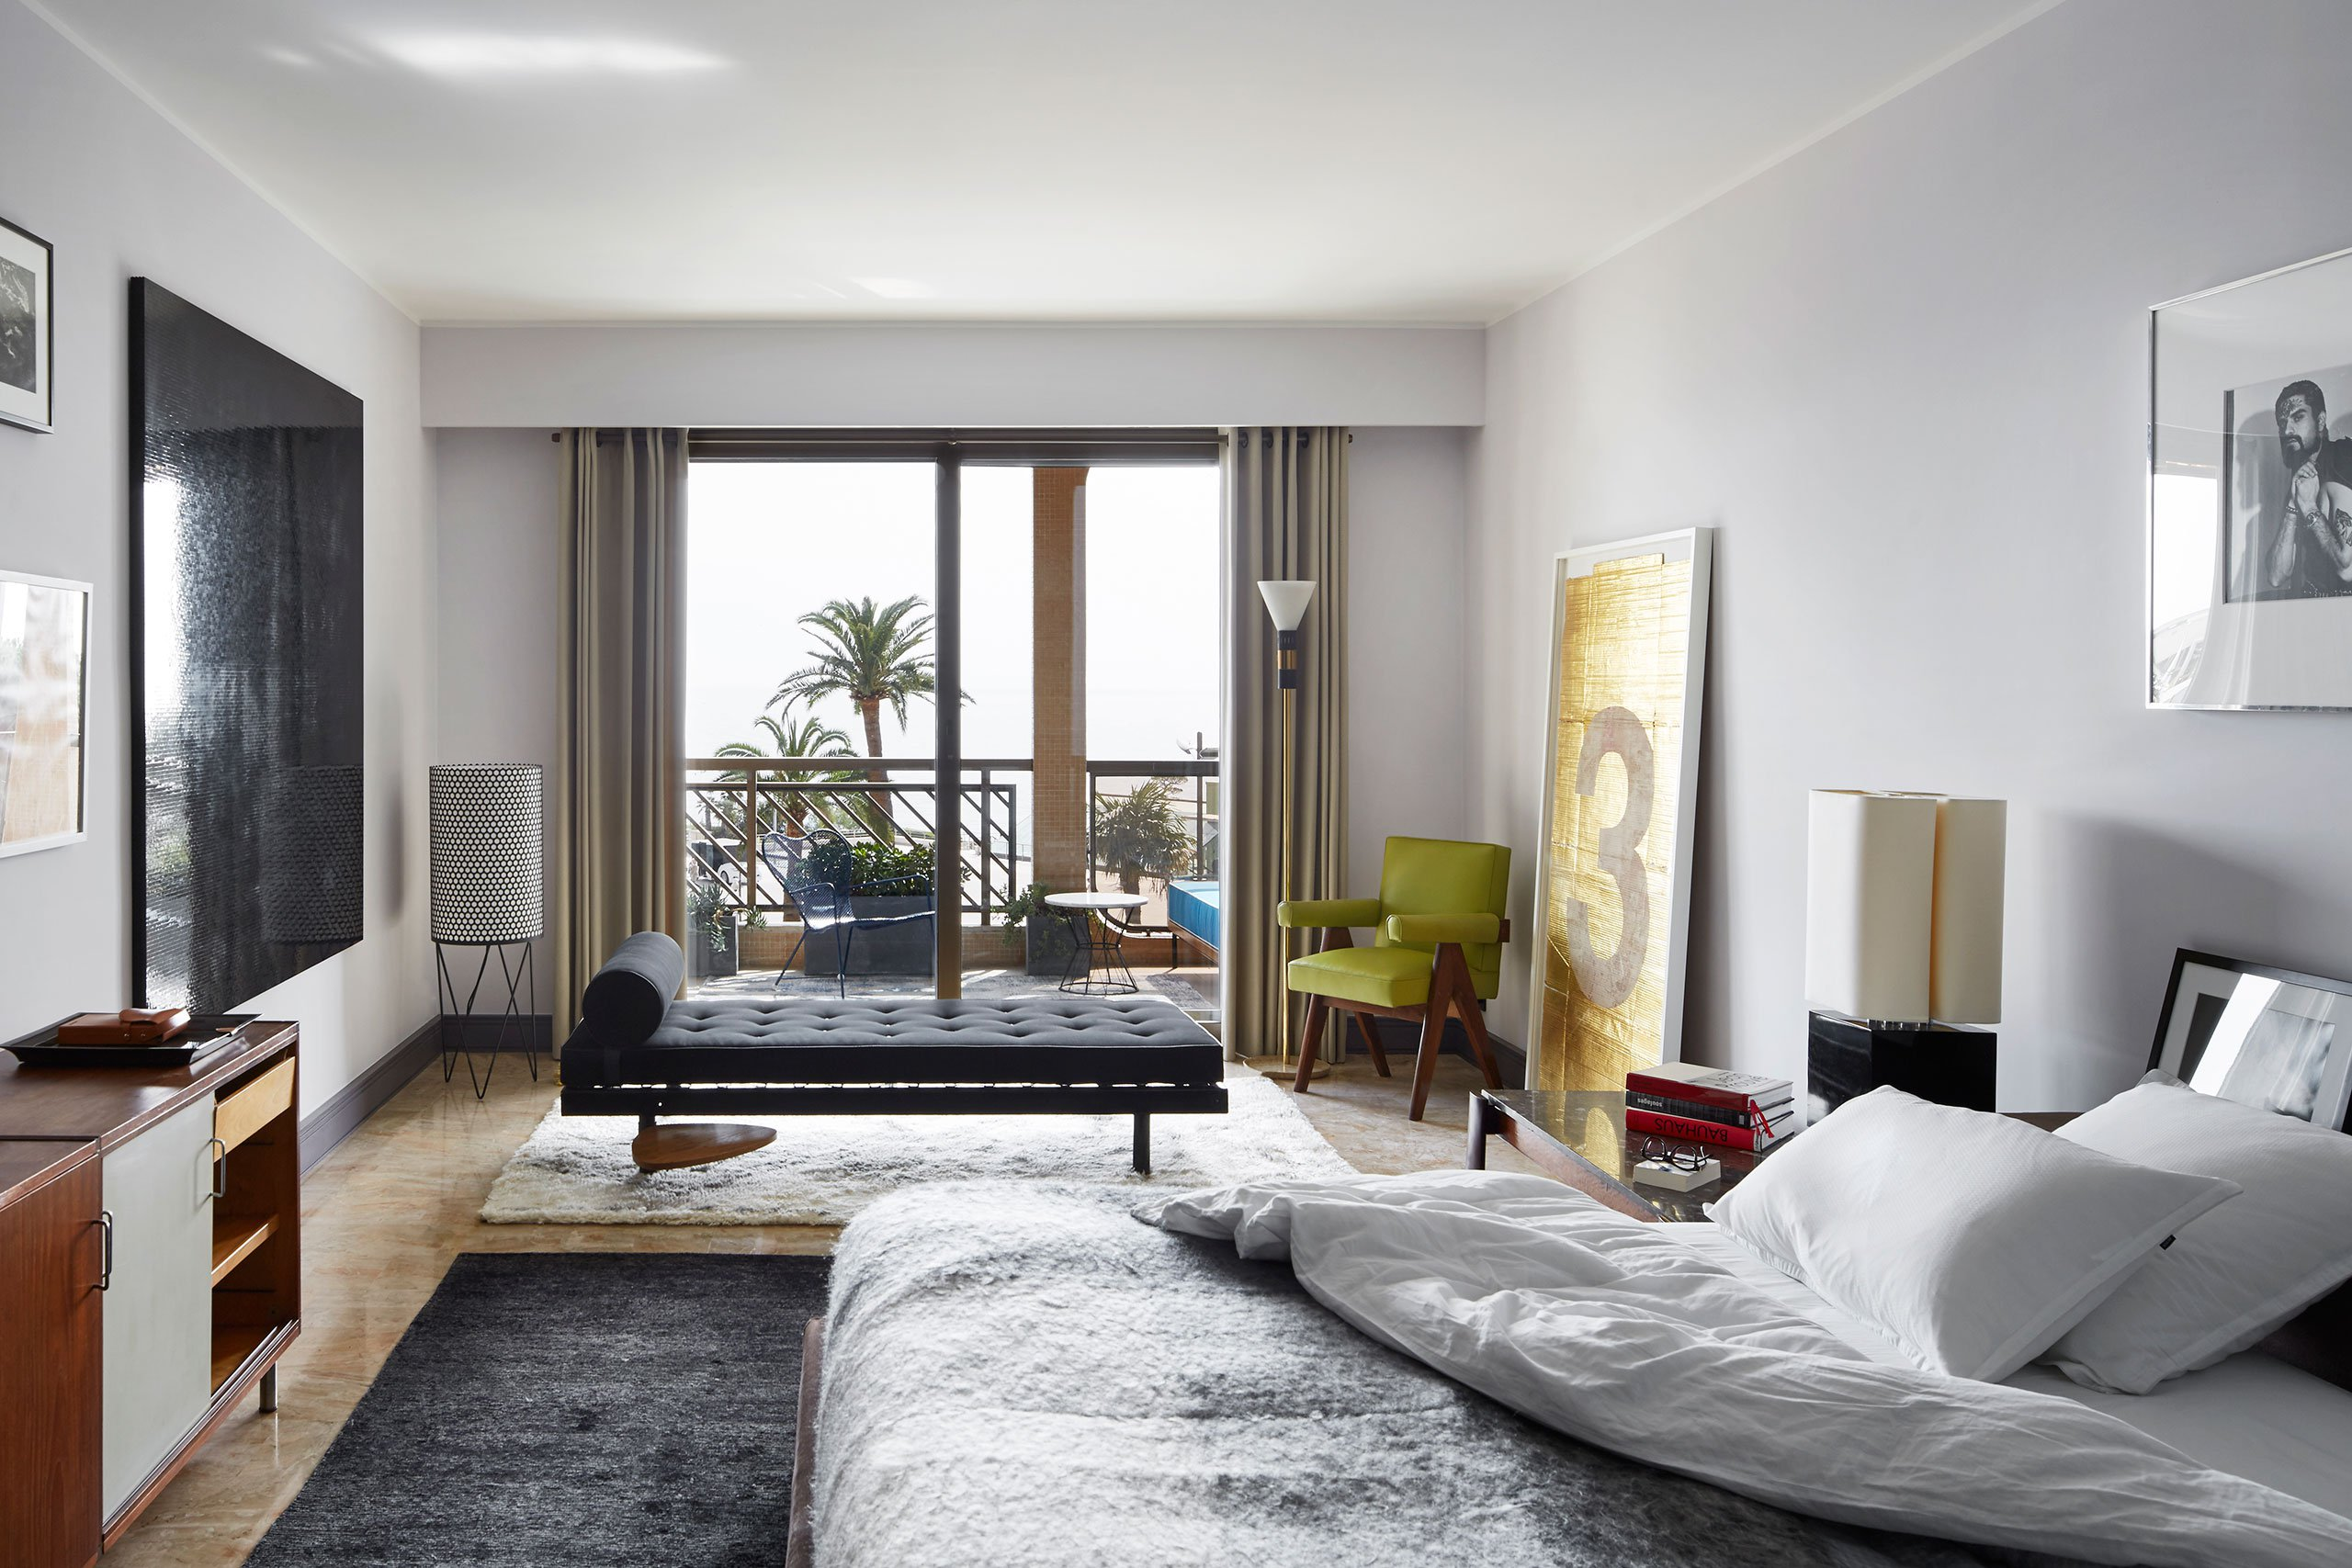 Timeless Luxury Apartment in Monaco Filled with Mid-Century Lighting 3 mid-century lighting Timeless Luxury Apartment in Monaco Filled with Mid-Century Lighting Timeless Luxury Apartment in Monaco Filled with Mid Century Lighting 10